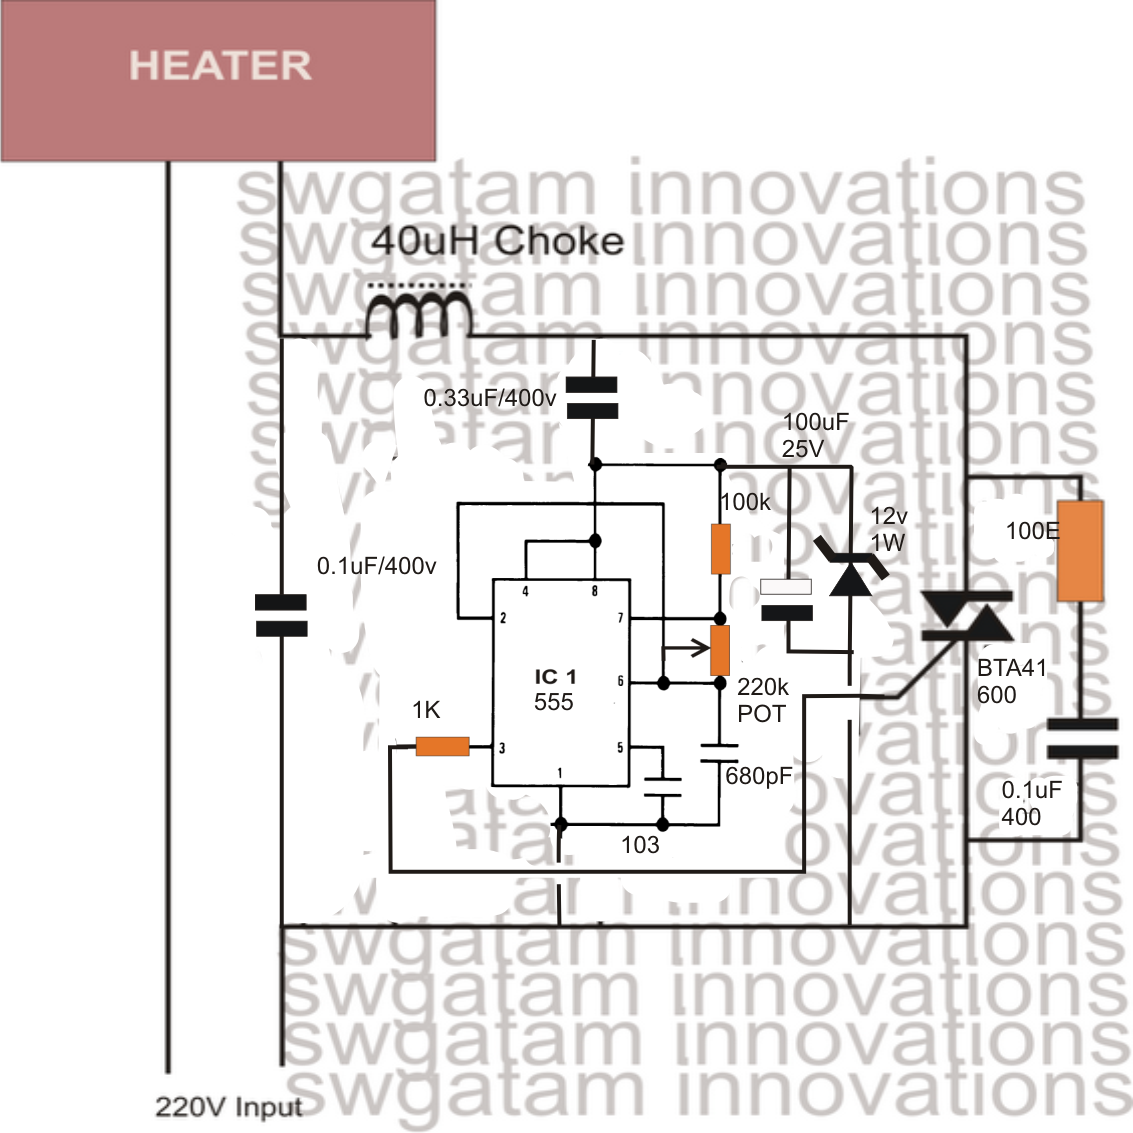 induction motor controller circuits - Yahoo Image Search results ...